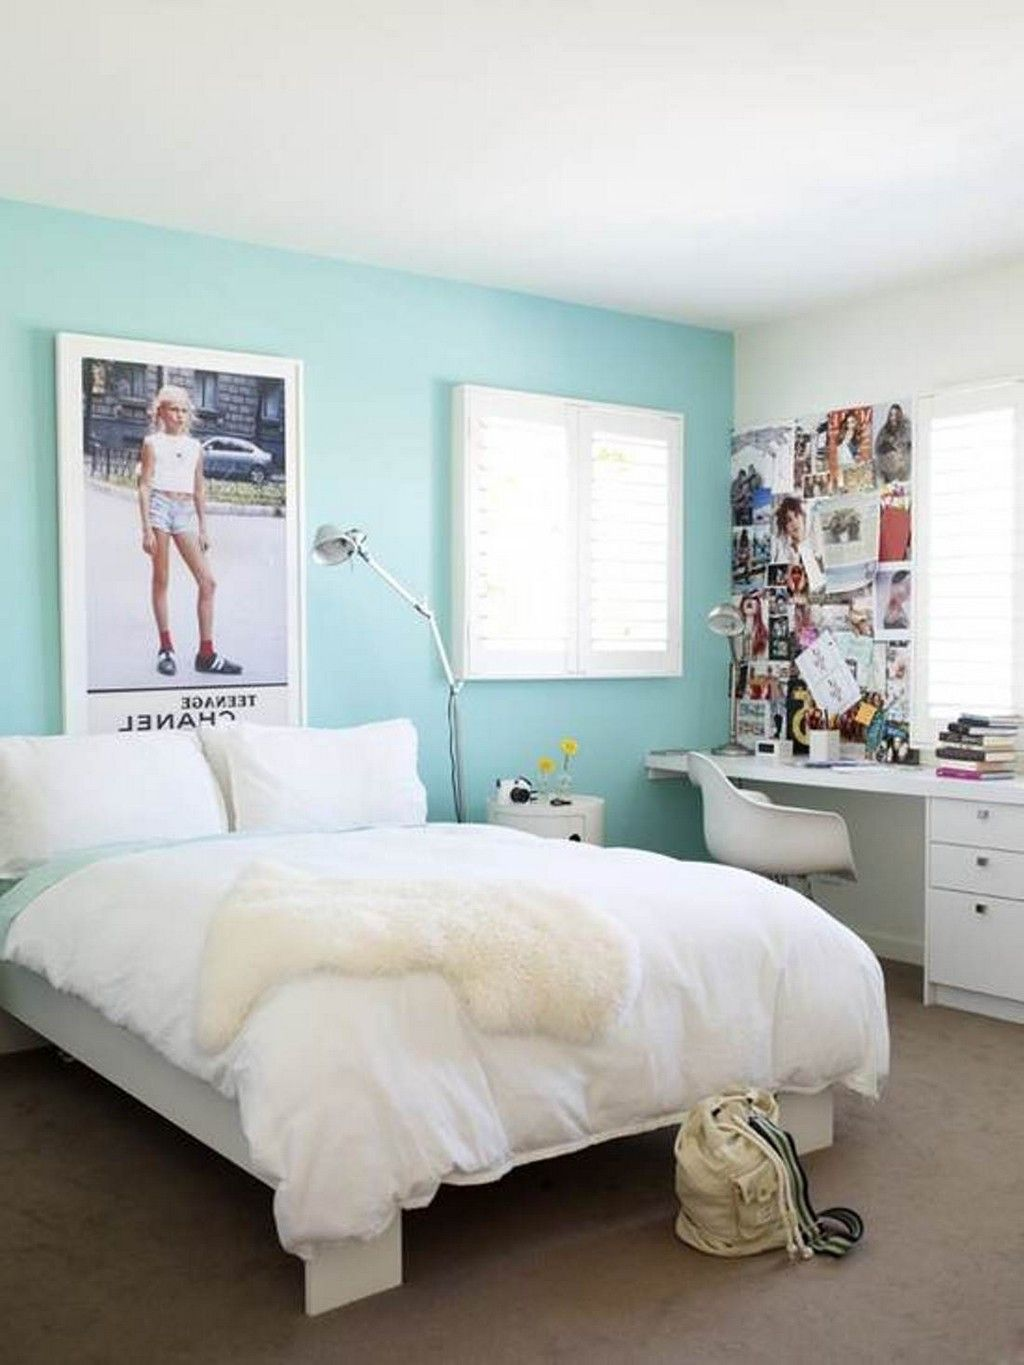 Bedroom blue color ideas - Bedroom Calming Blue Paint Colors For Small Teen Bedroom Ideas